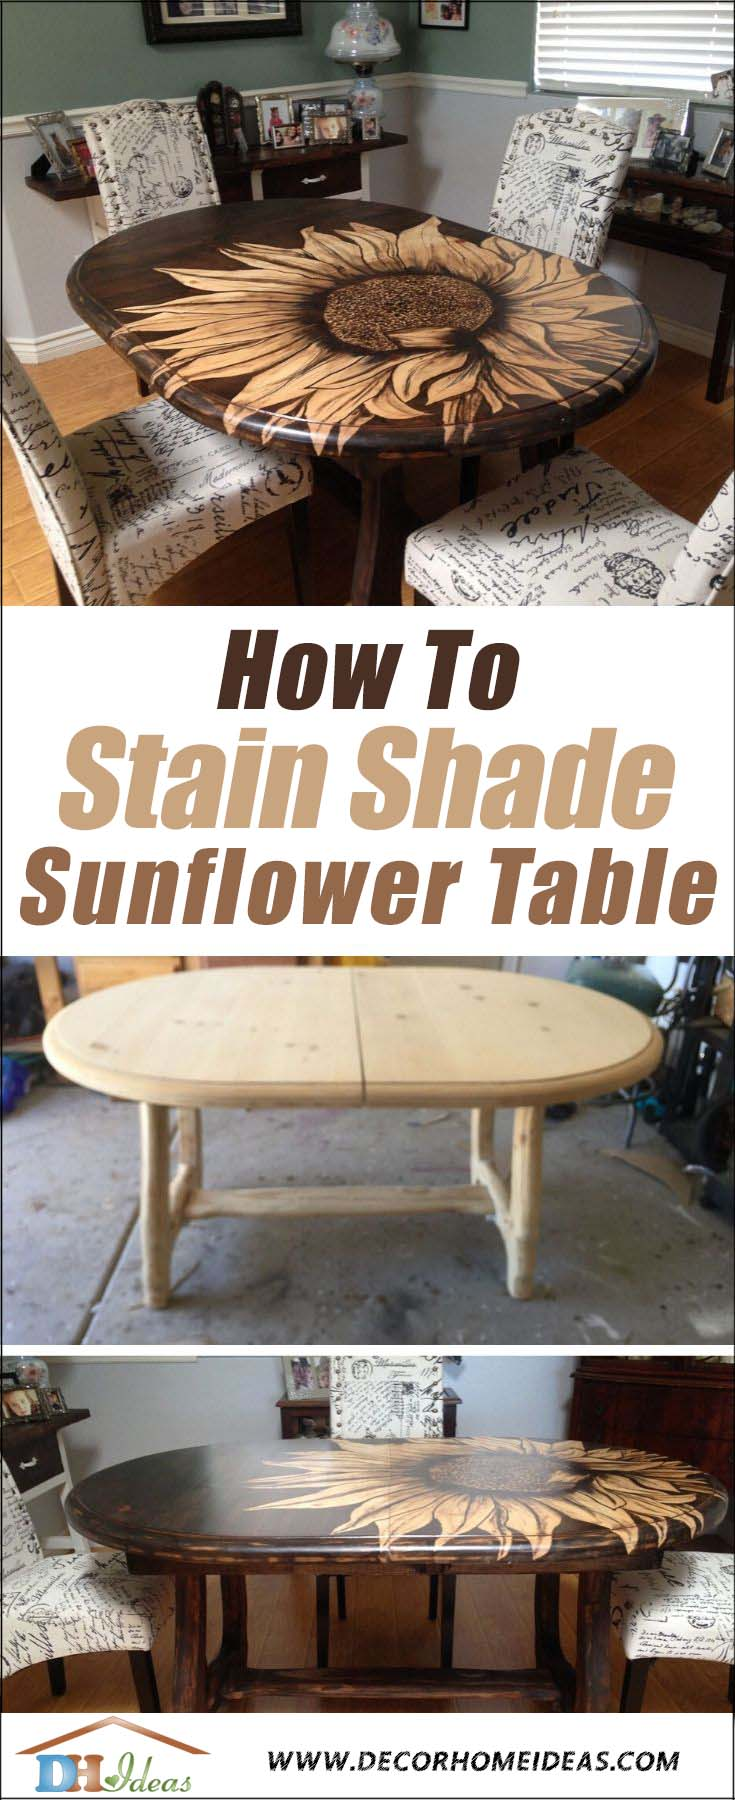 DIY Sunflower Table Stain Shading. How to transform an old boring table into a gorgeous dining table with stain shaded sunflower. #diy #stain #table #makeover #decorhomeideas